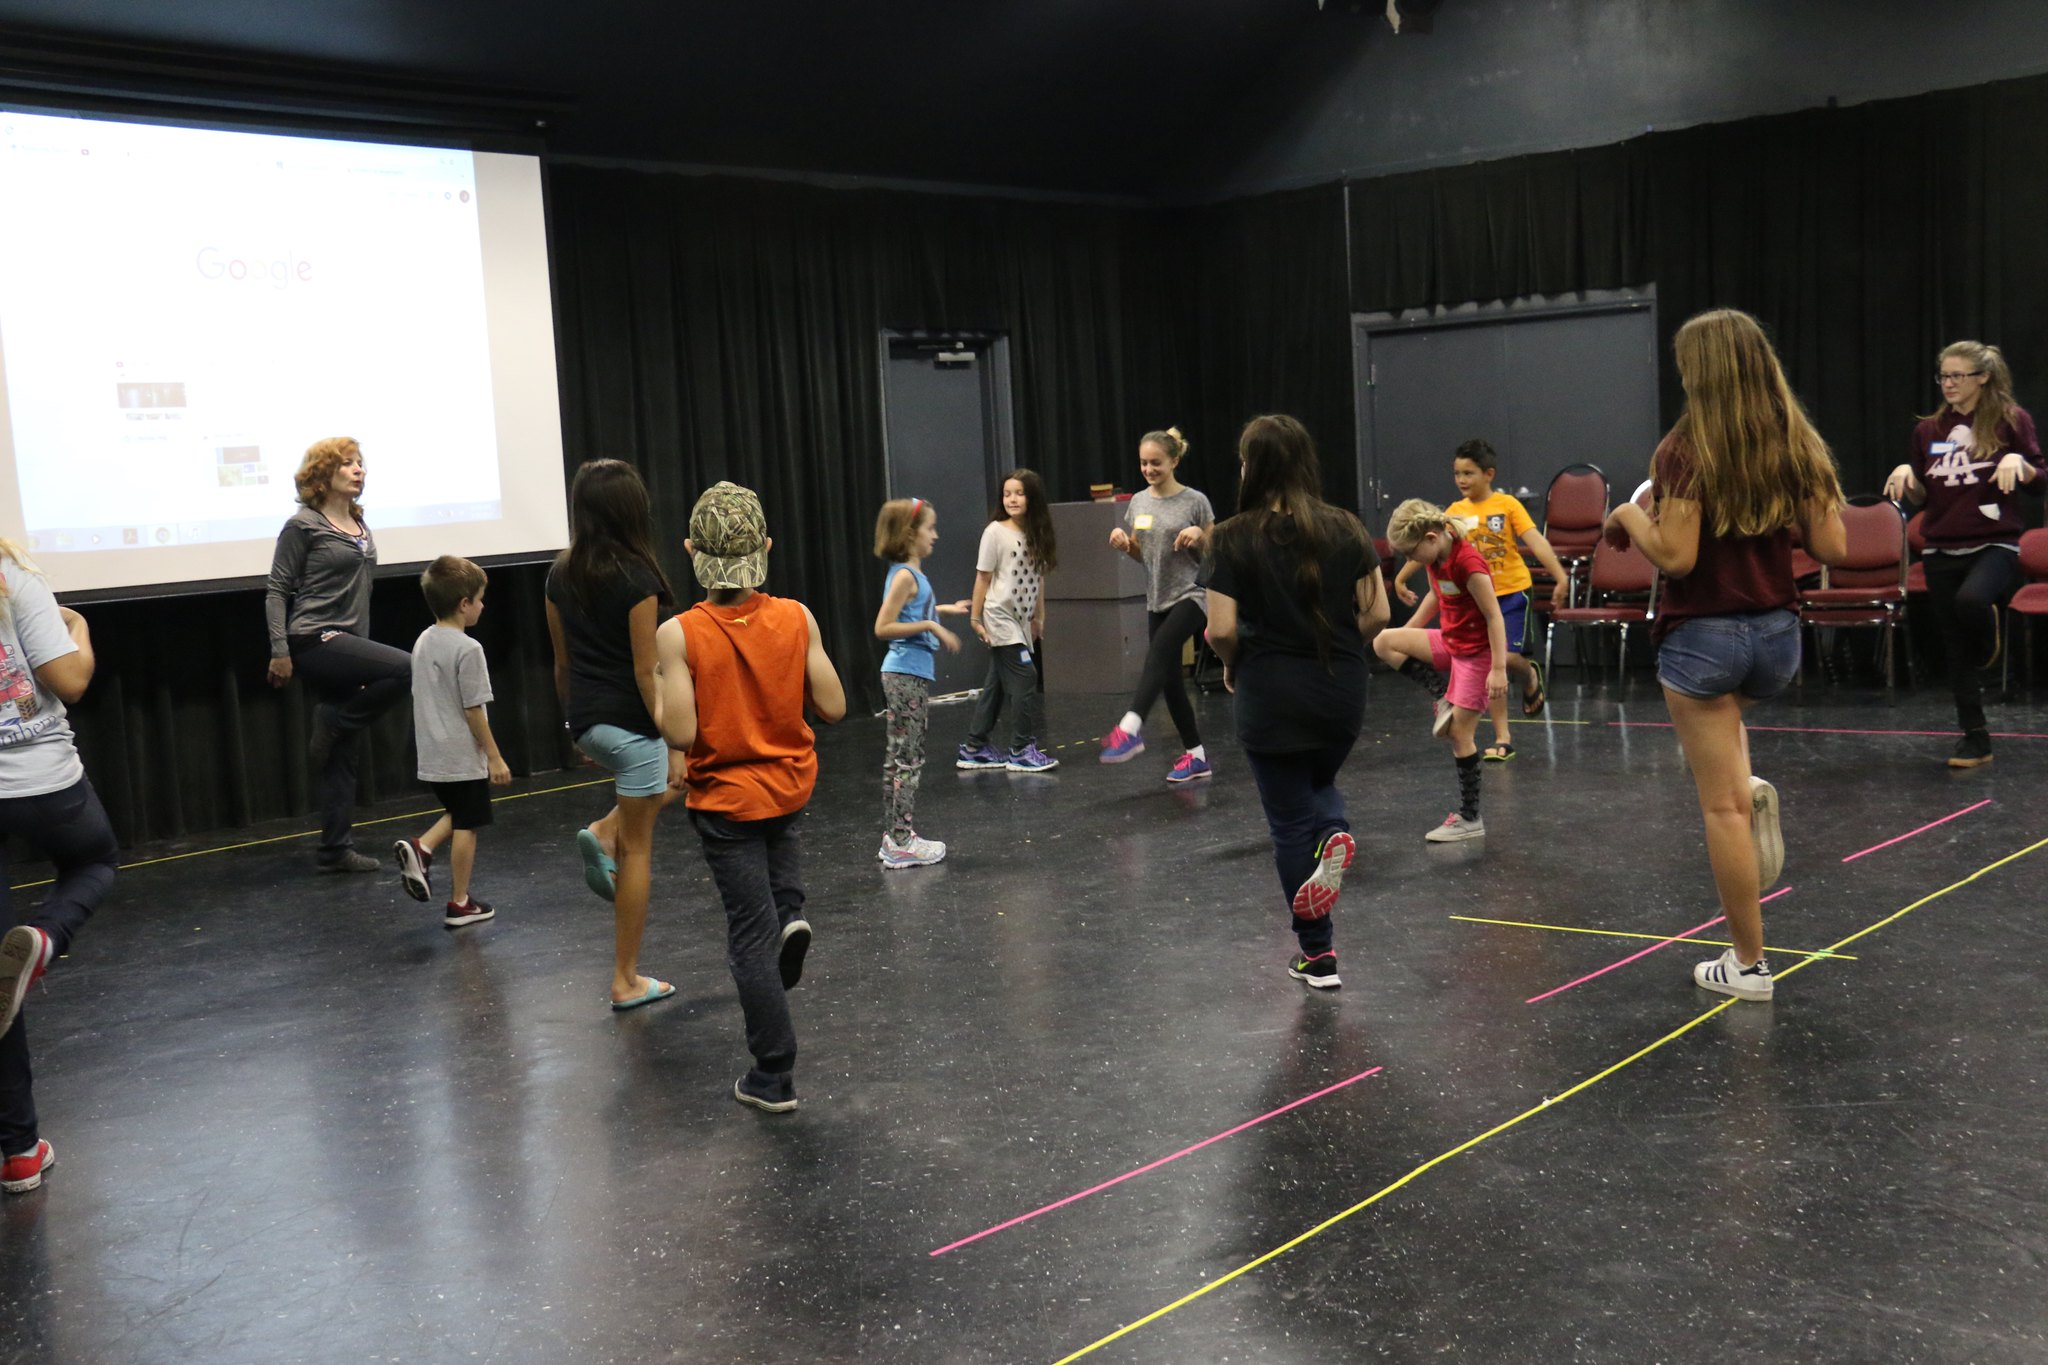 Agnes Wahlstrom Youth Playhouse / Theatre Education Building - The Richardson Room of the Agnes Wahlstrom Youth Playhouse is a multi-functional space. It can be configured as a black box performance space or can be used for receptions, special events, and a rehearsal hall or class room.